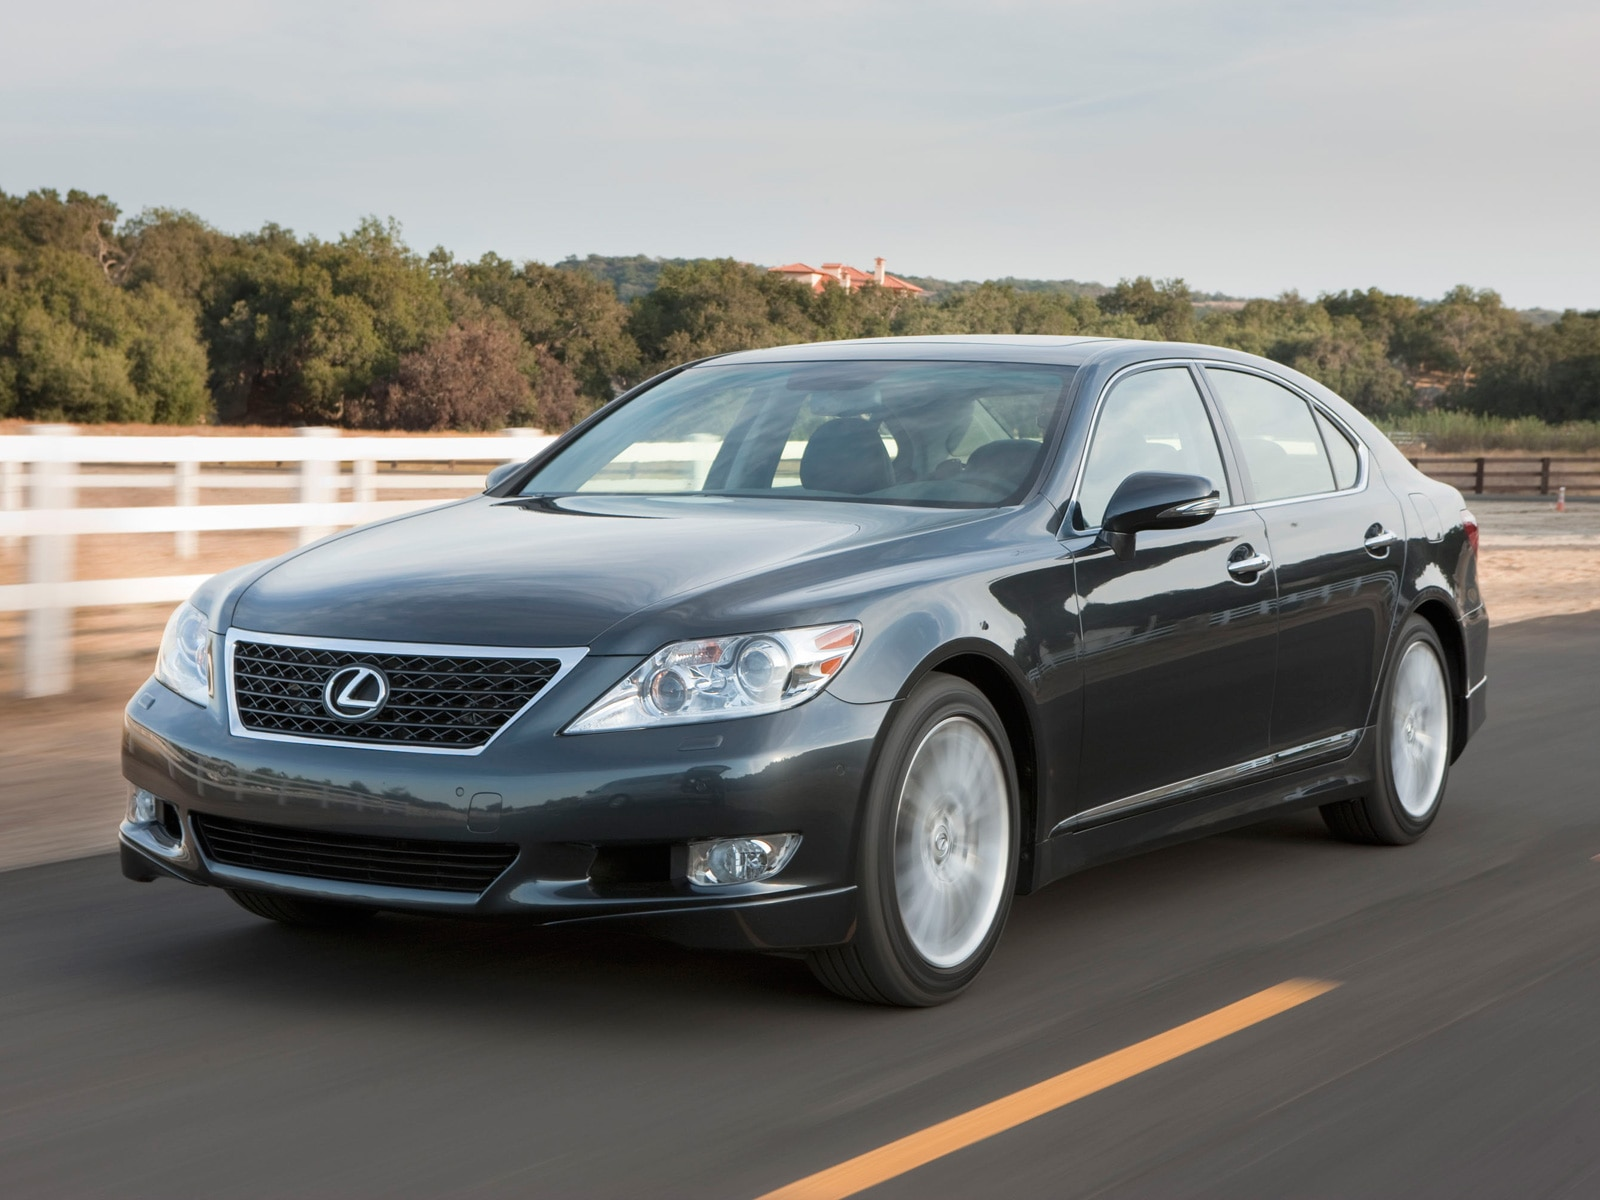 2010 Lexus LS460 Sport - Lexus Luxury Sport Sedan Review ...